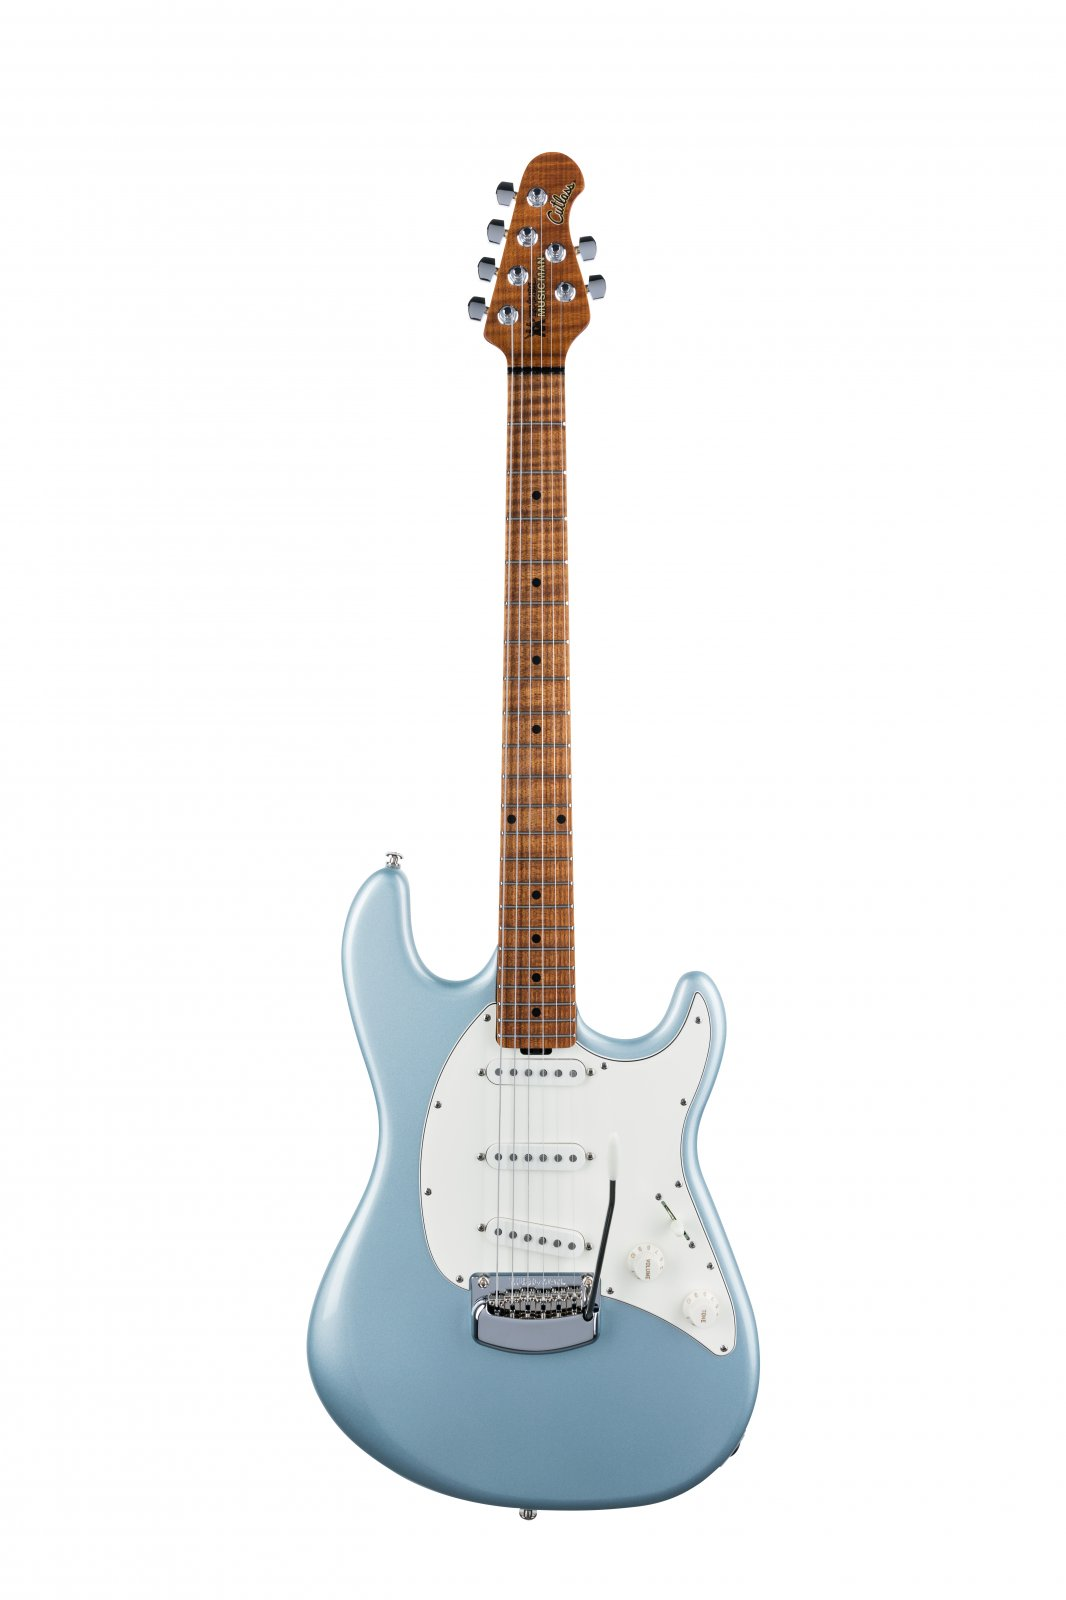 Ernie Ball Music Man Cutlass RS